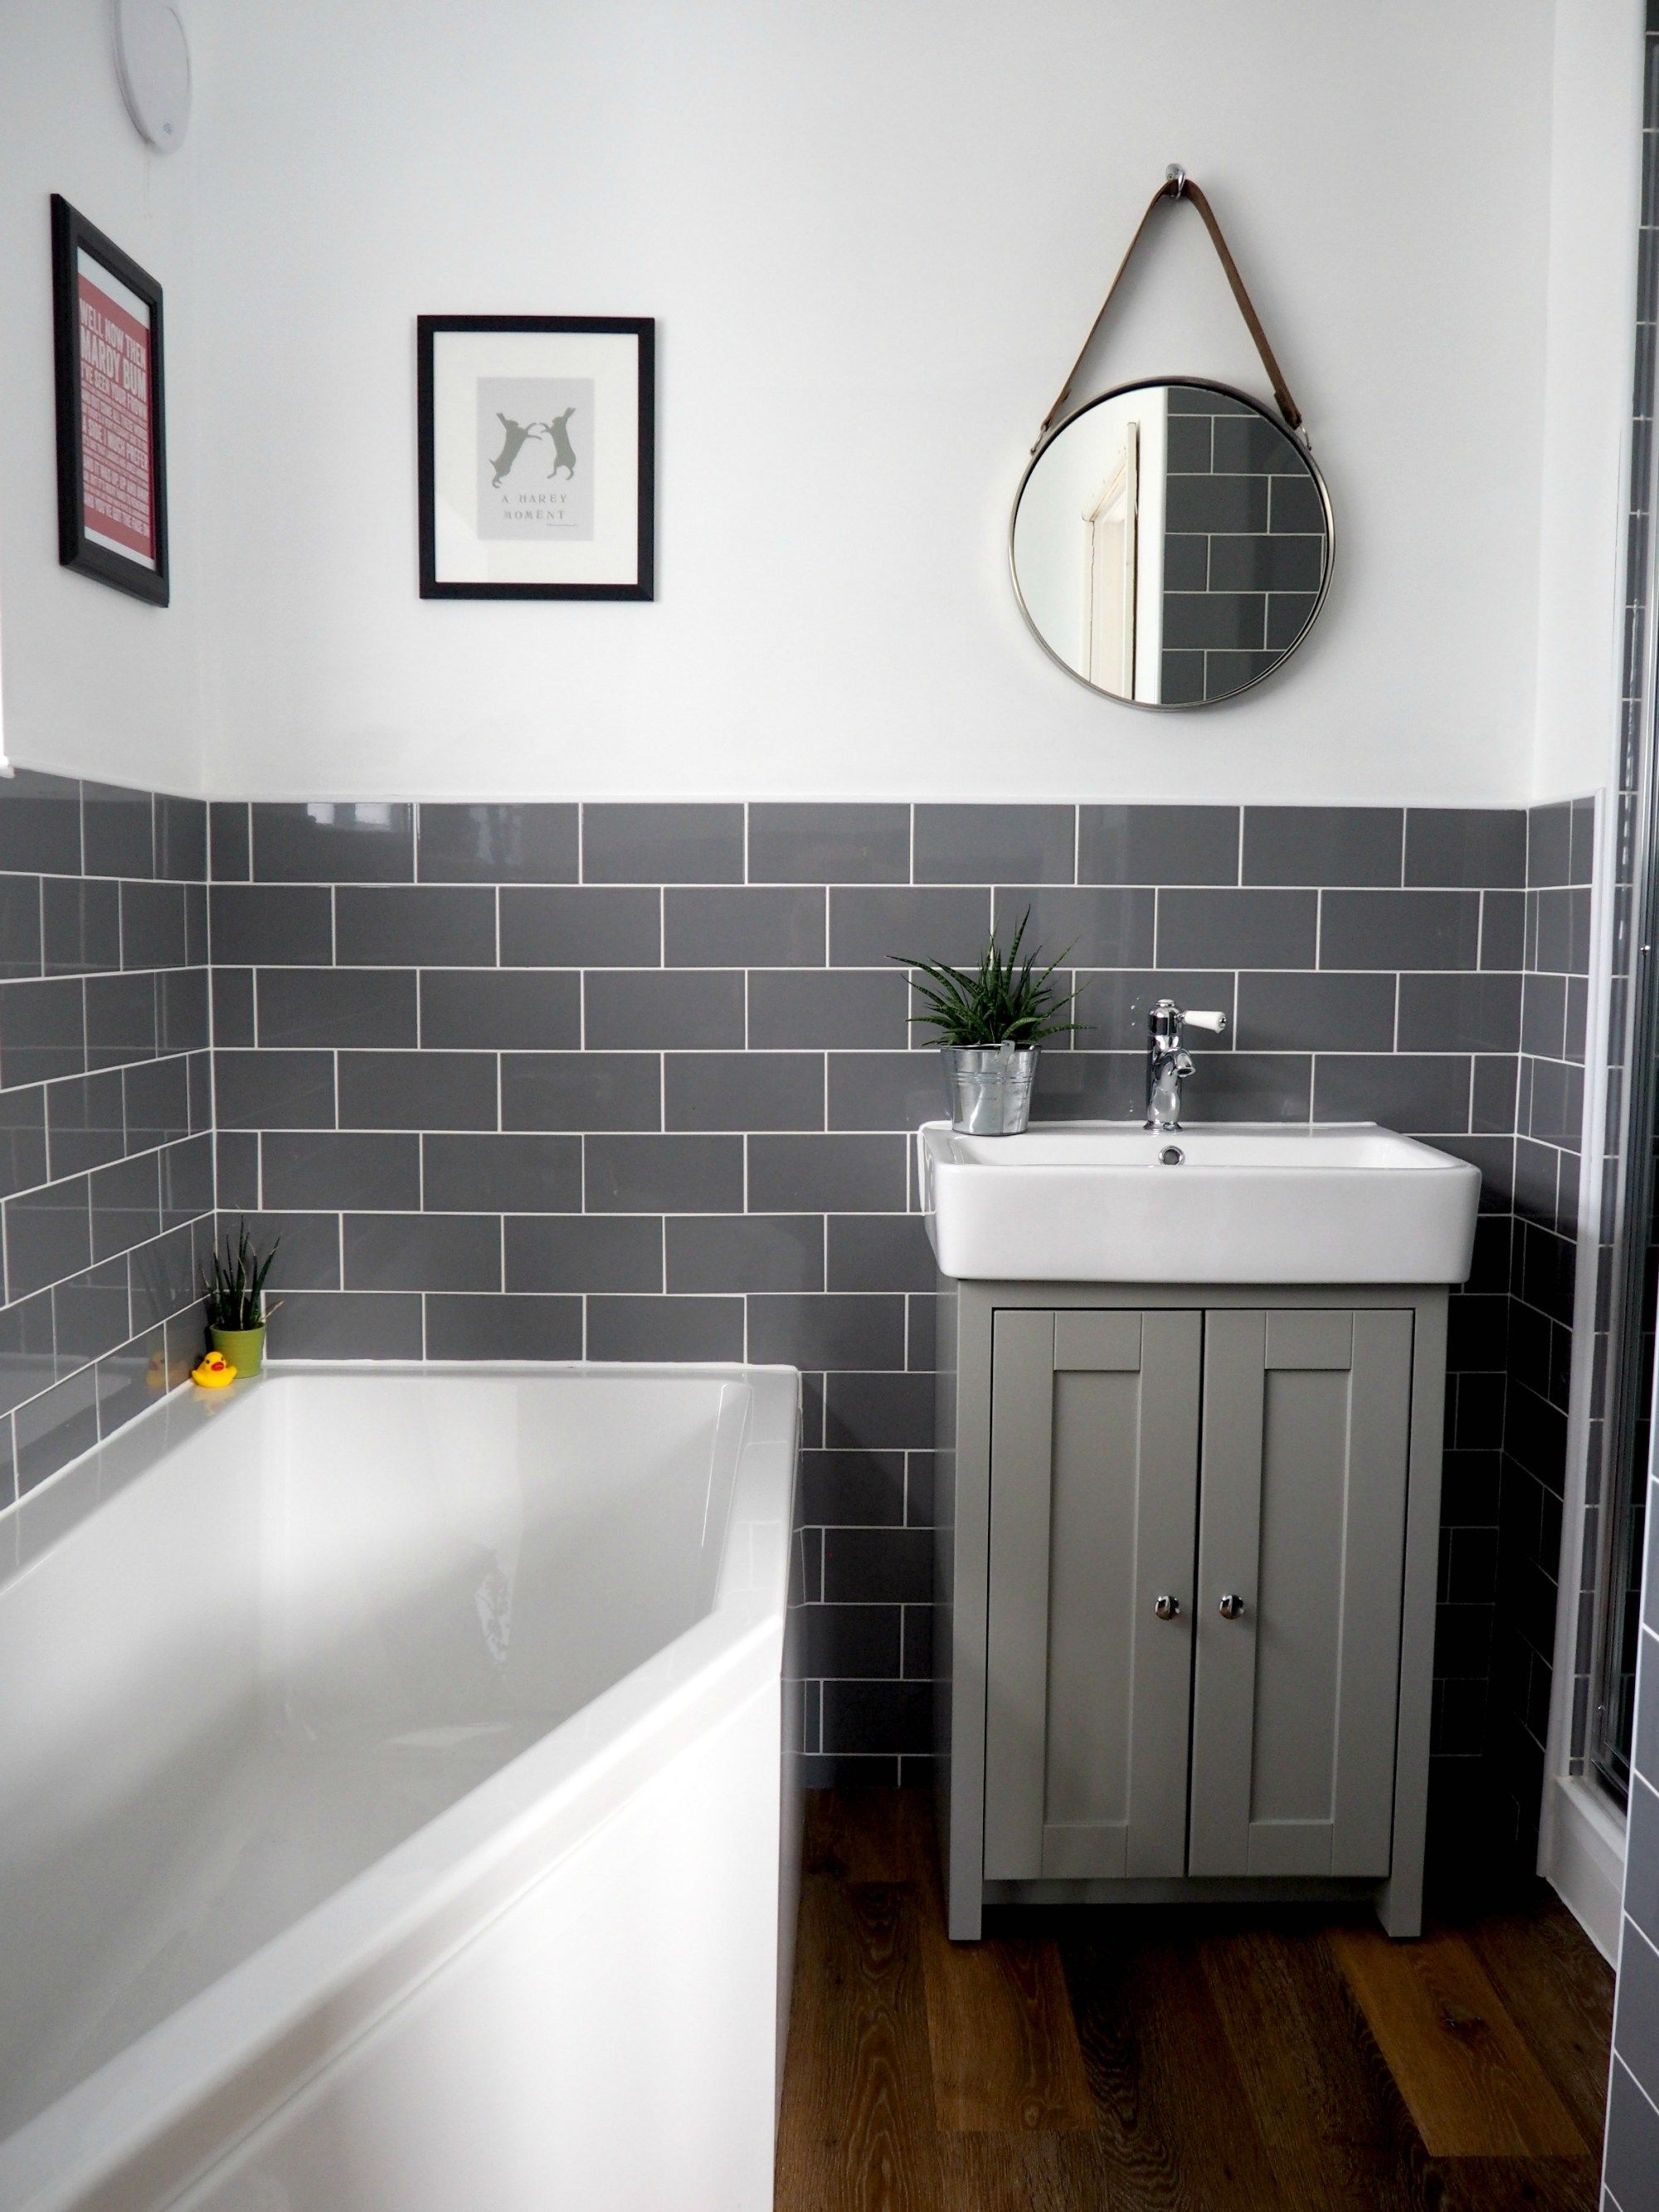 Bathroom Renovation Ideas: Bathroom Remodel Cost, Bathroom Ideas For Small  Bathrooms, Small Bathroom Design Ideas #Bathroom #remodel #Renovation